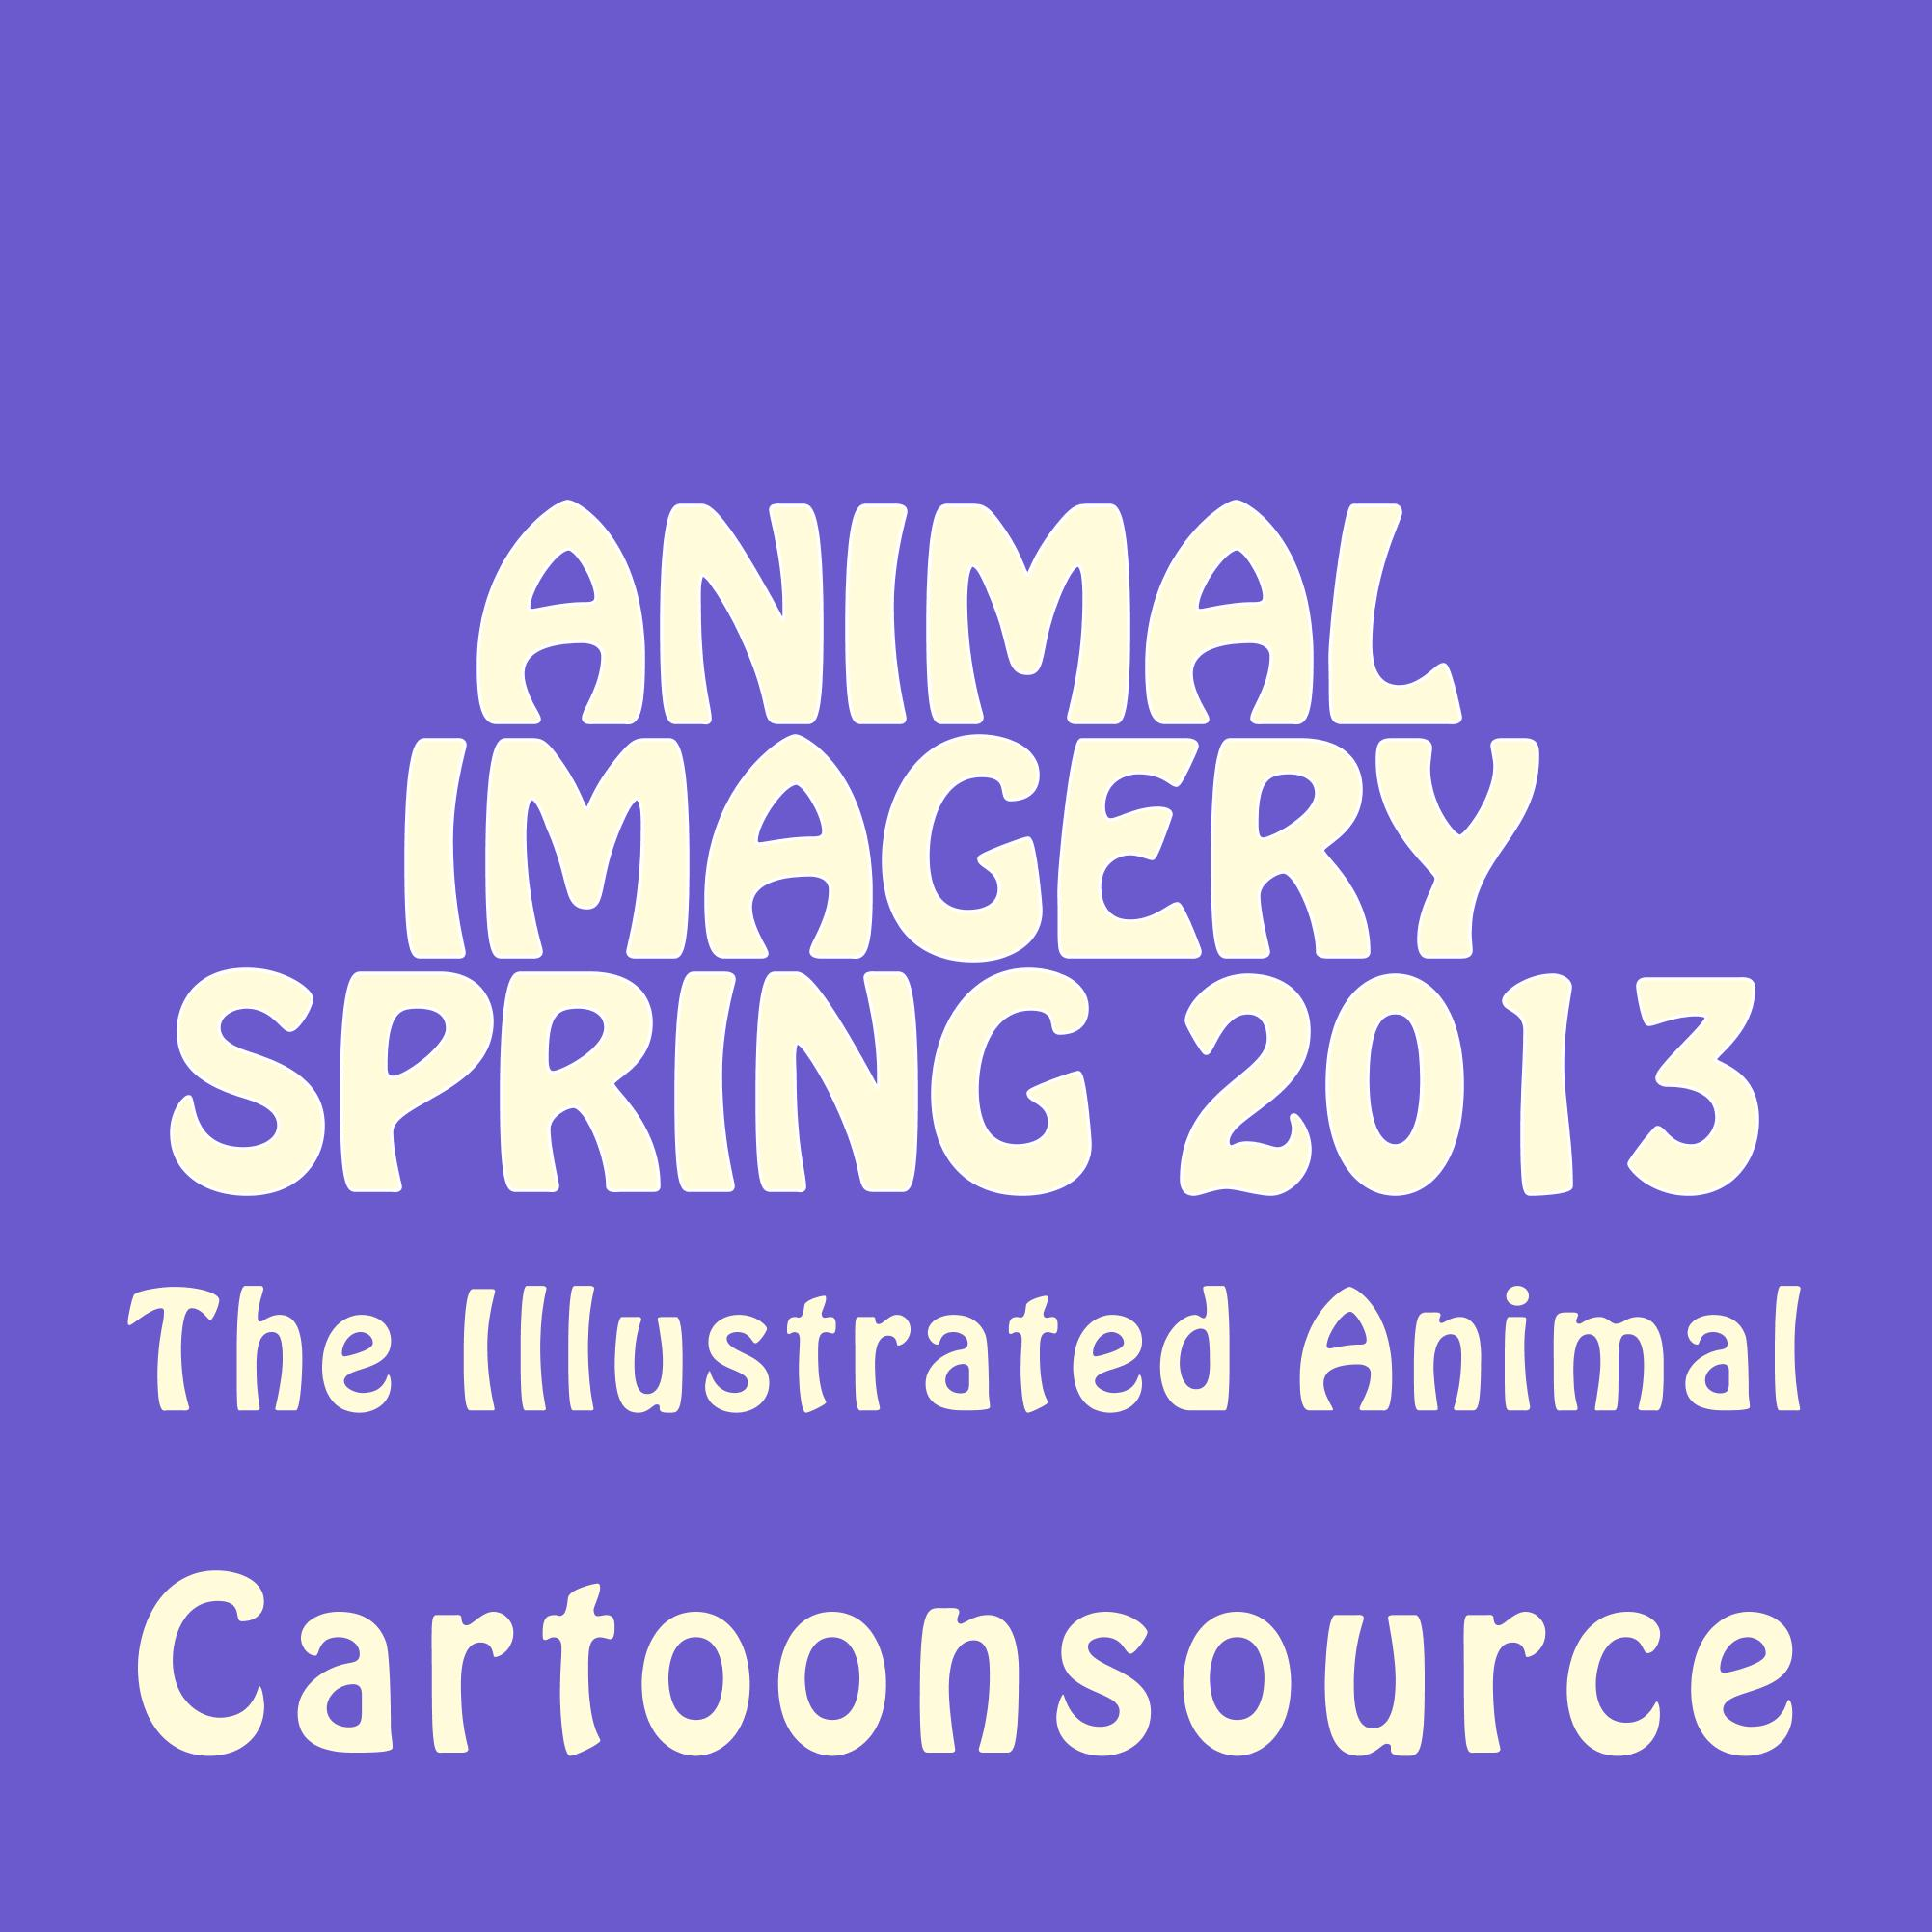 Animal_Imagery_sprin_Cover_for_Kindle.jpg